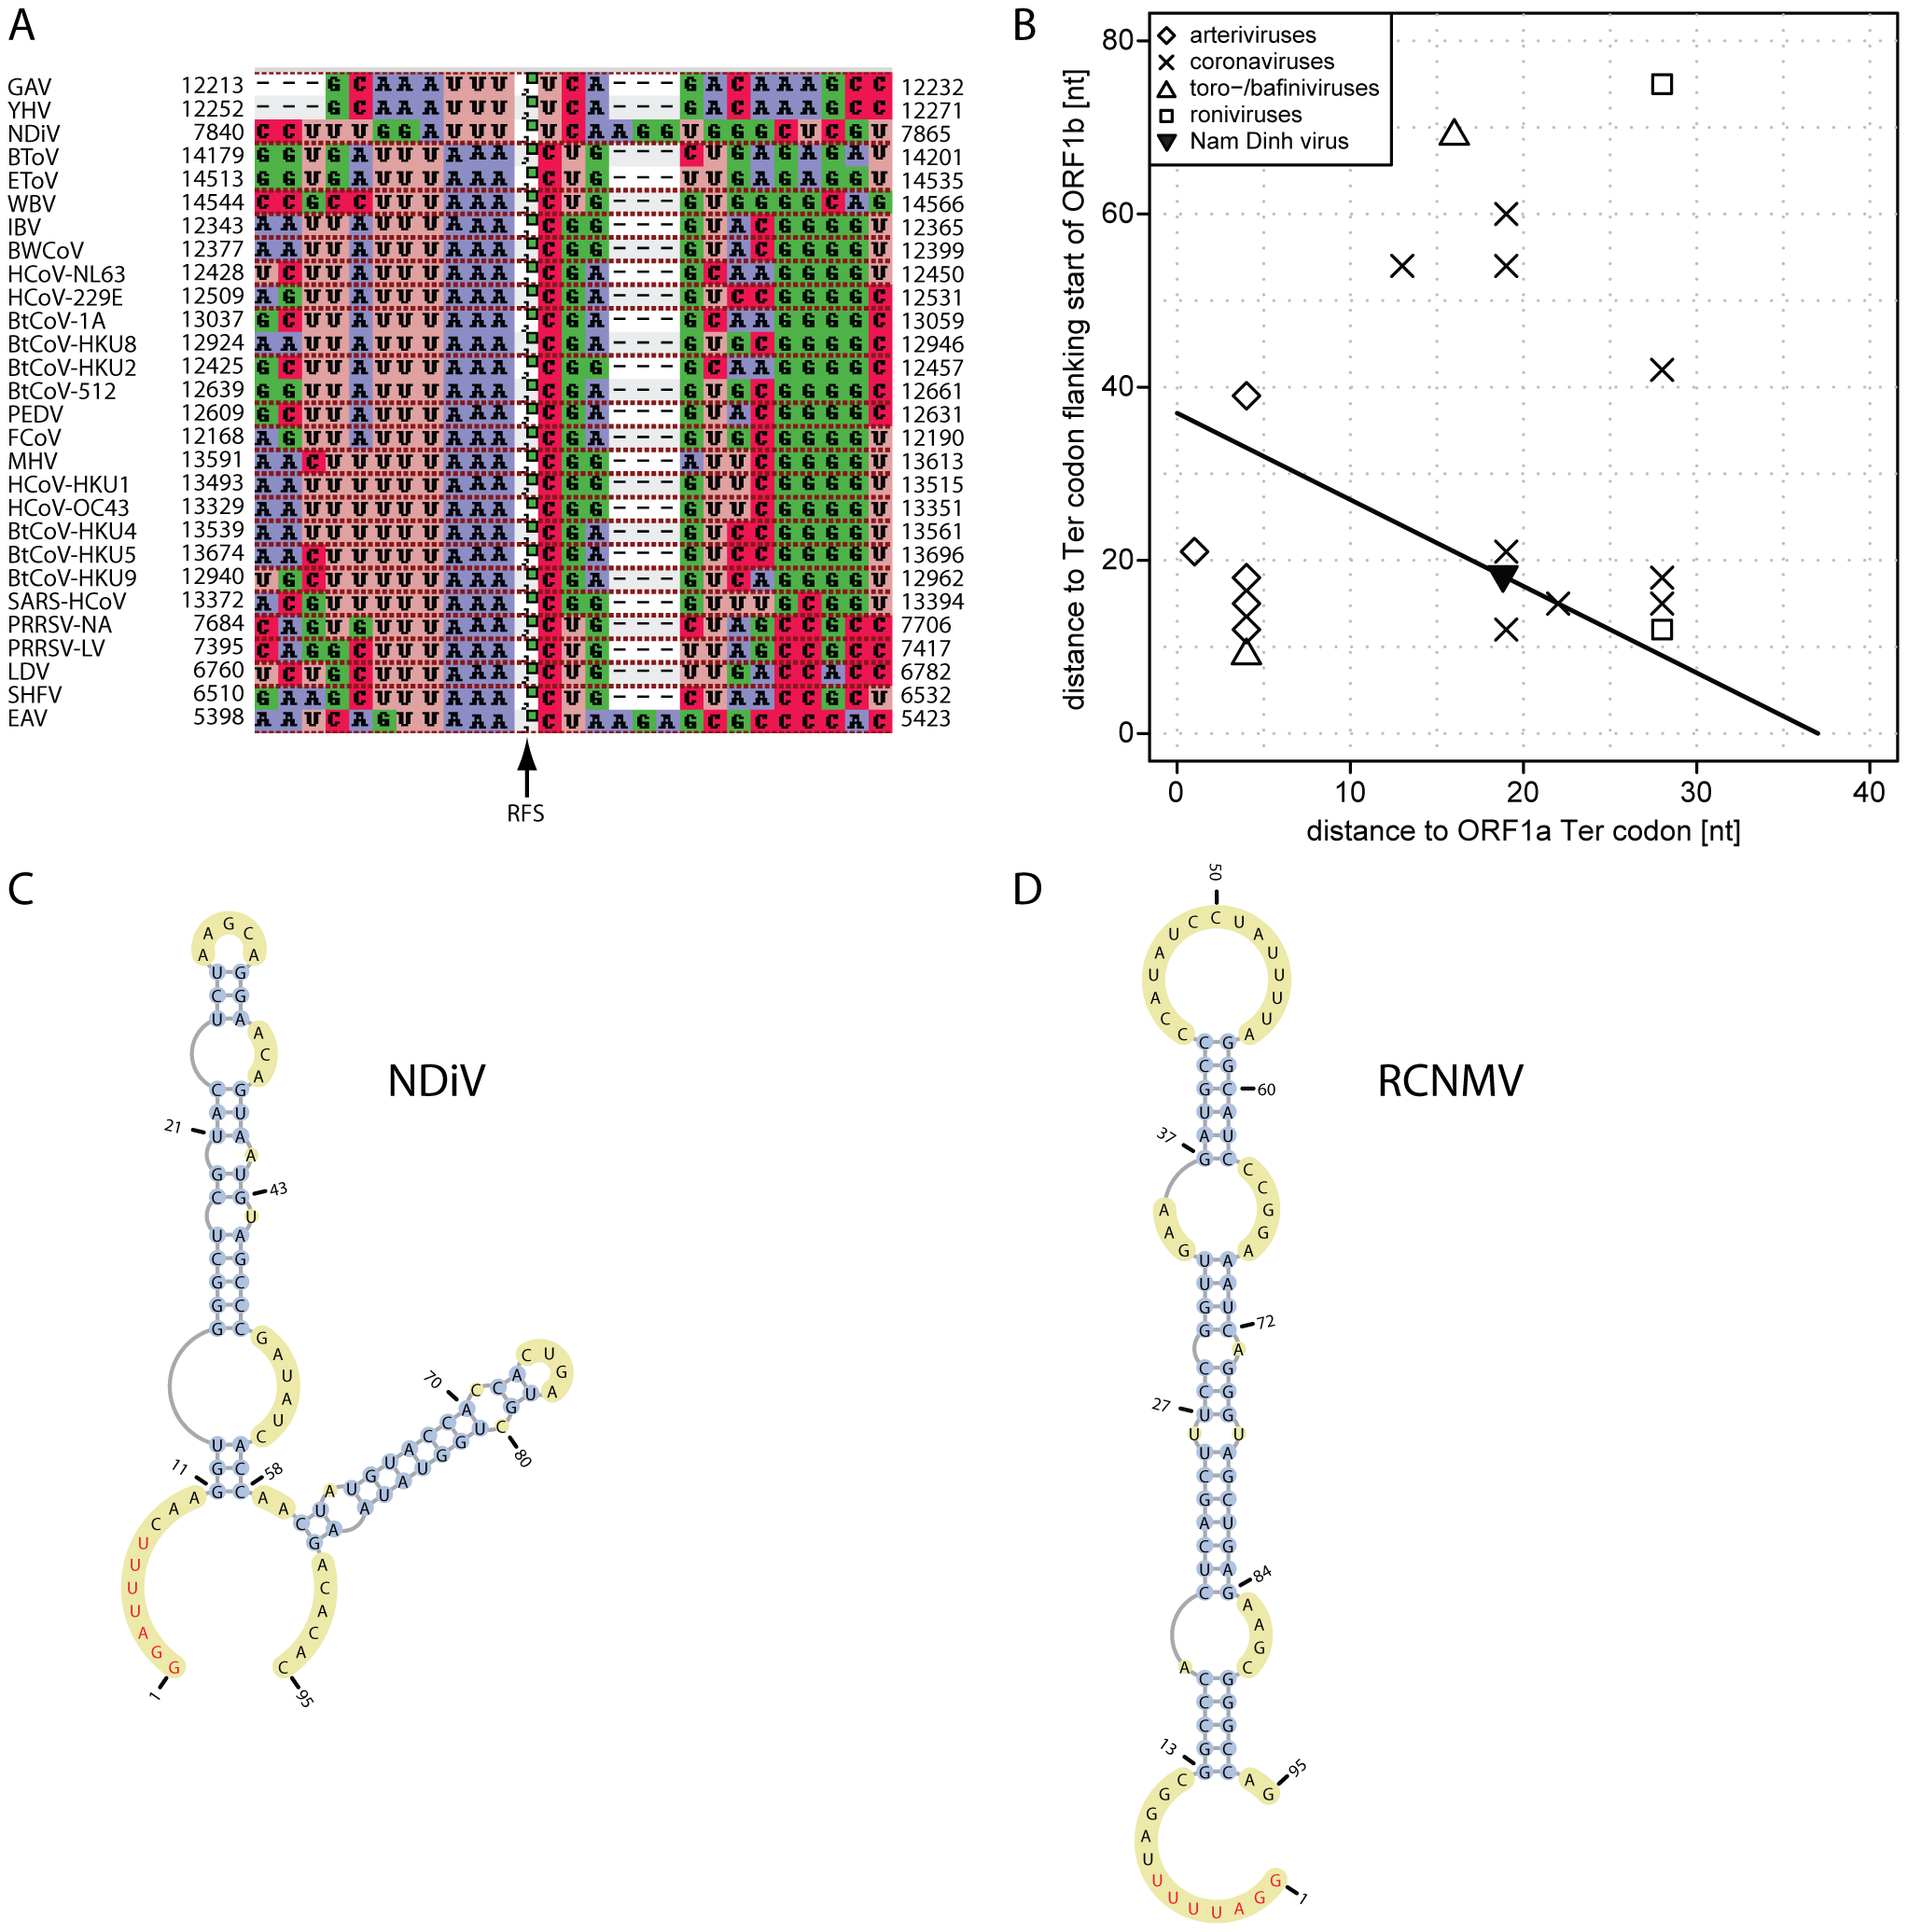 ORF1a/ORF1b ribosomal frameshifting in the NDiV genome.